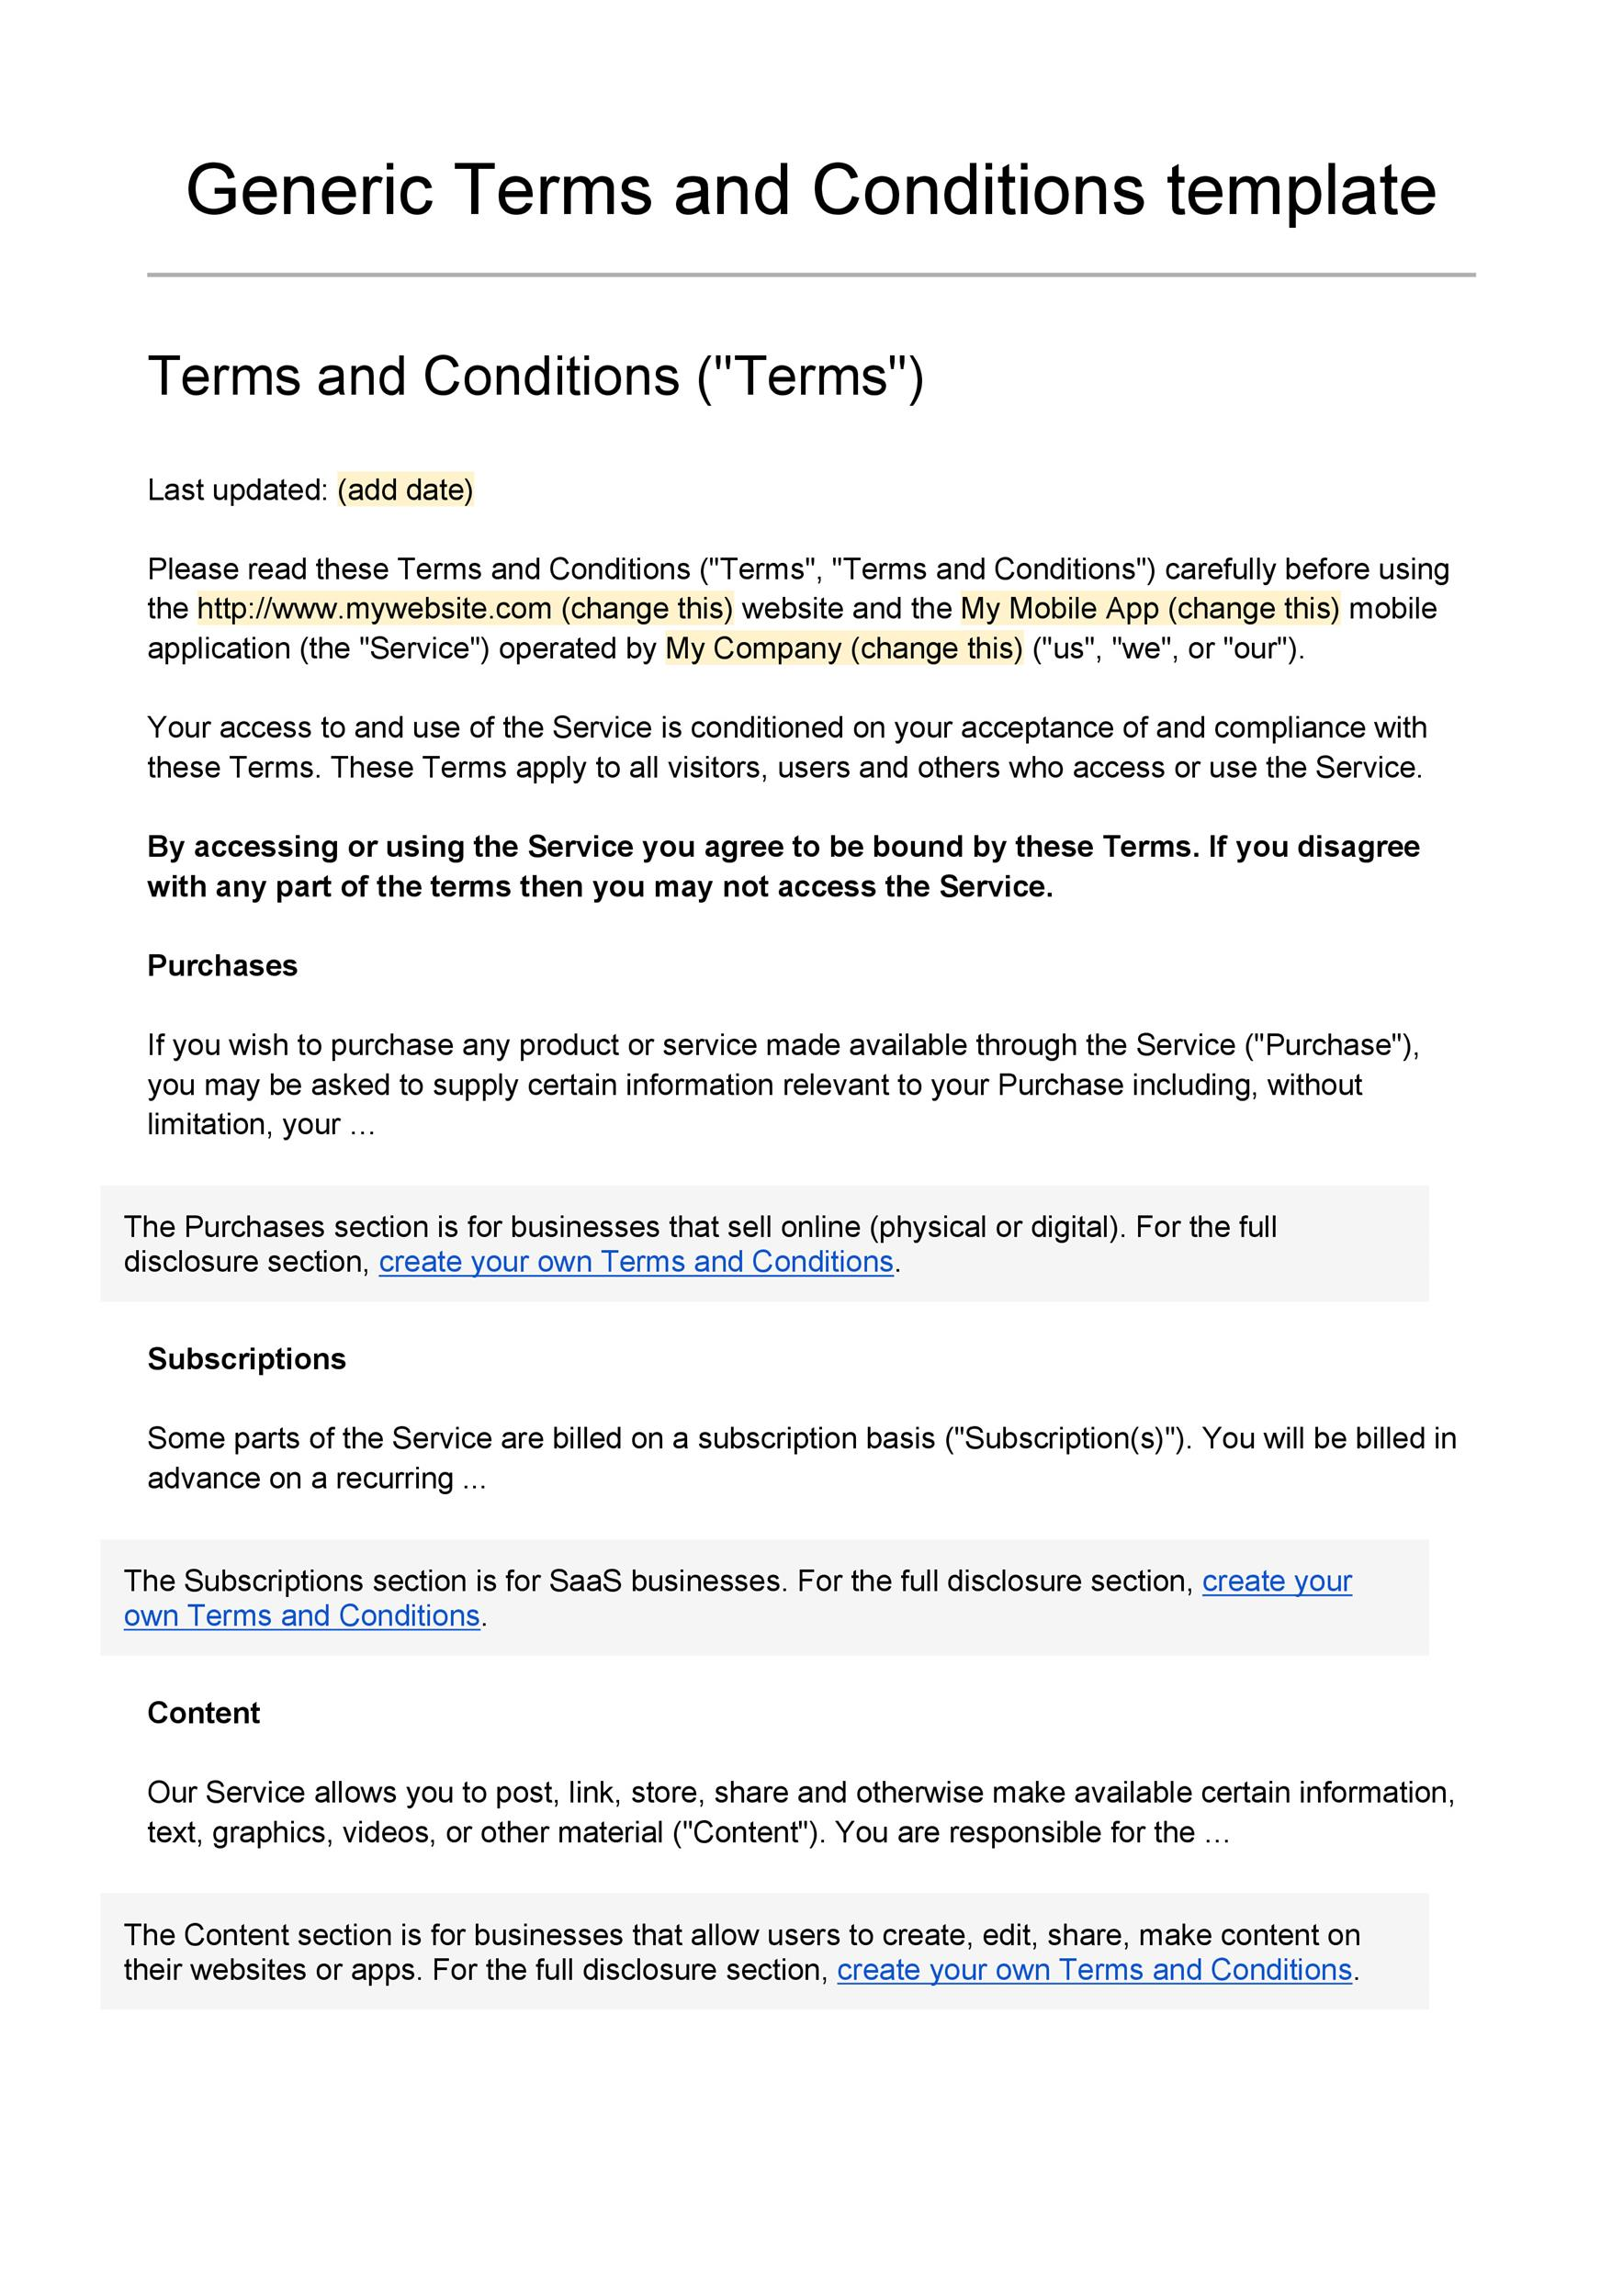 Free Terms And Conditions Templates For Any Website Template Lab - Free terms and conditions template for services